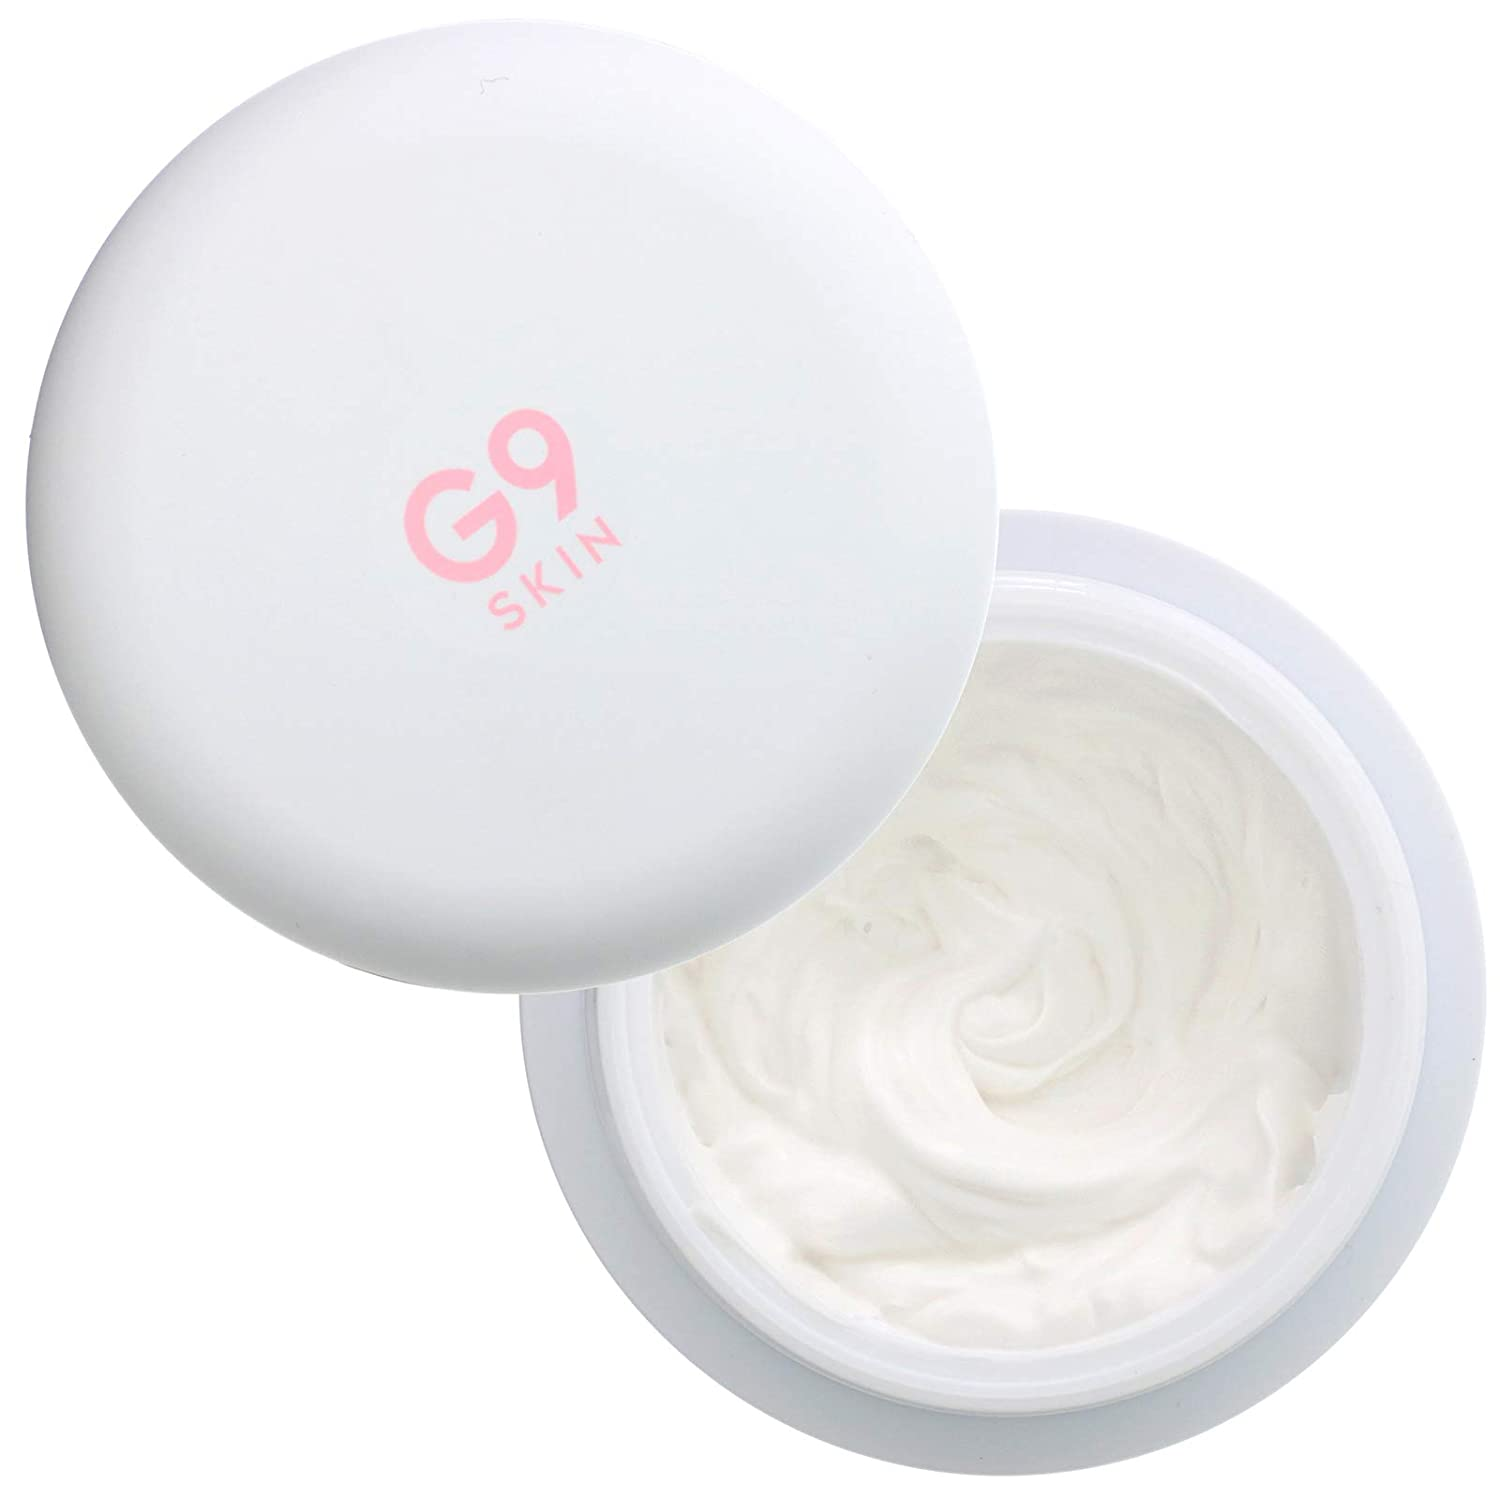 [G9SKIN] White In Whipping Cream 50ml